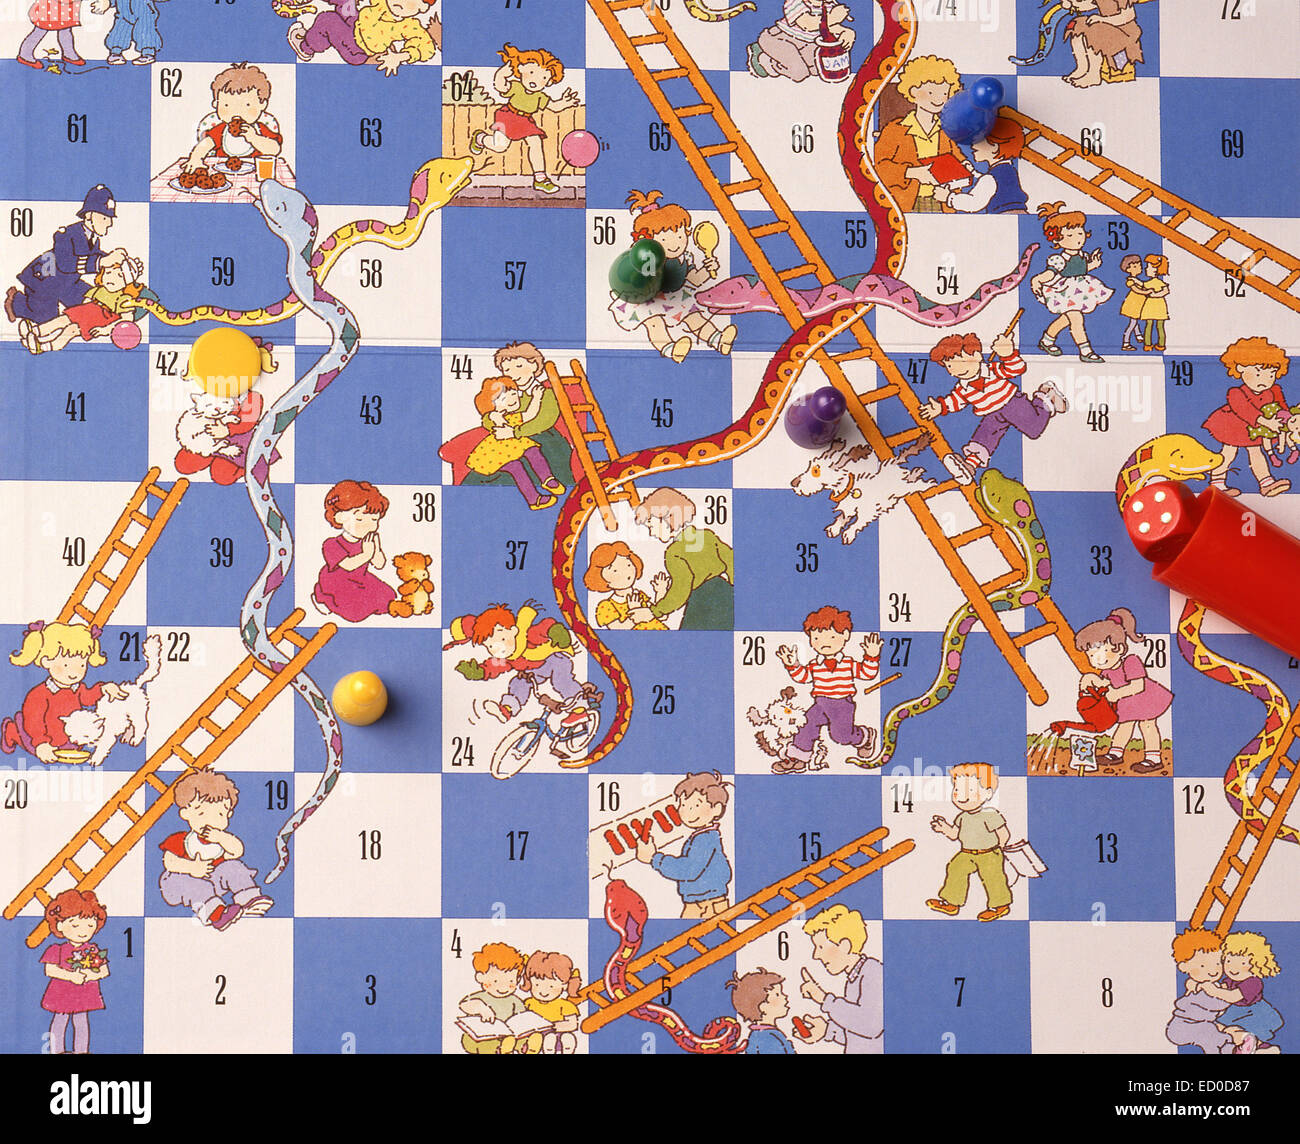 Snakes & Ladders board game with dice and counters (still-life) - Stock Image